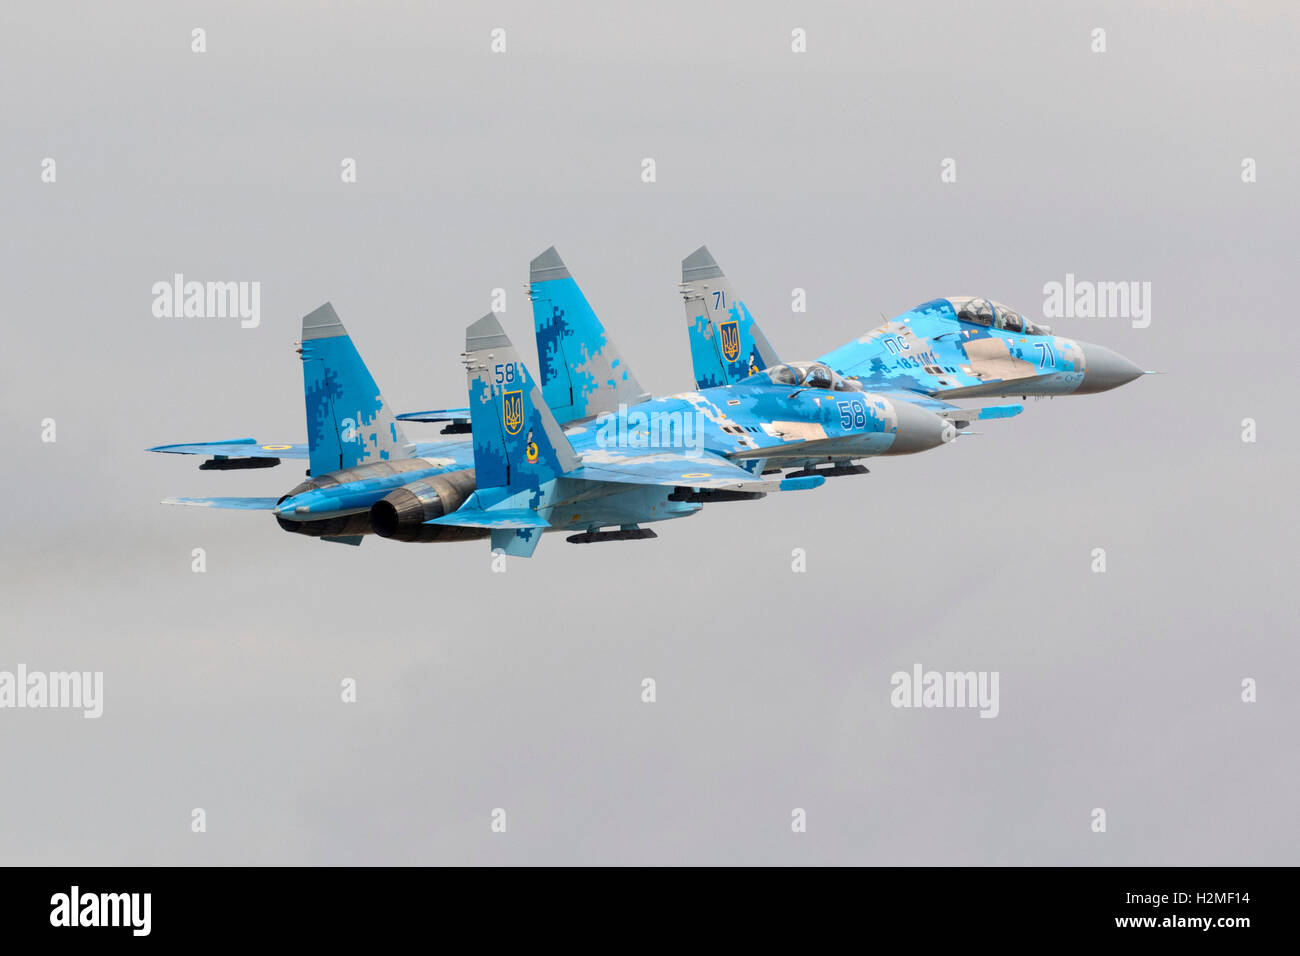 Two Ukrainian Air Force Sukhoi Su-27'departing together after the airshow is over. Stock Photo